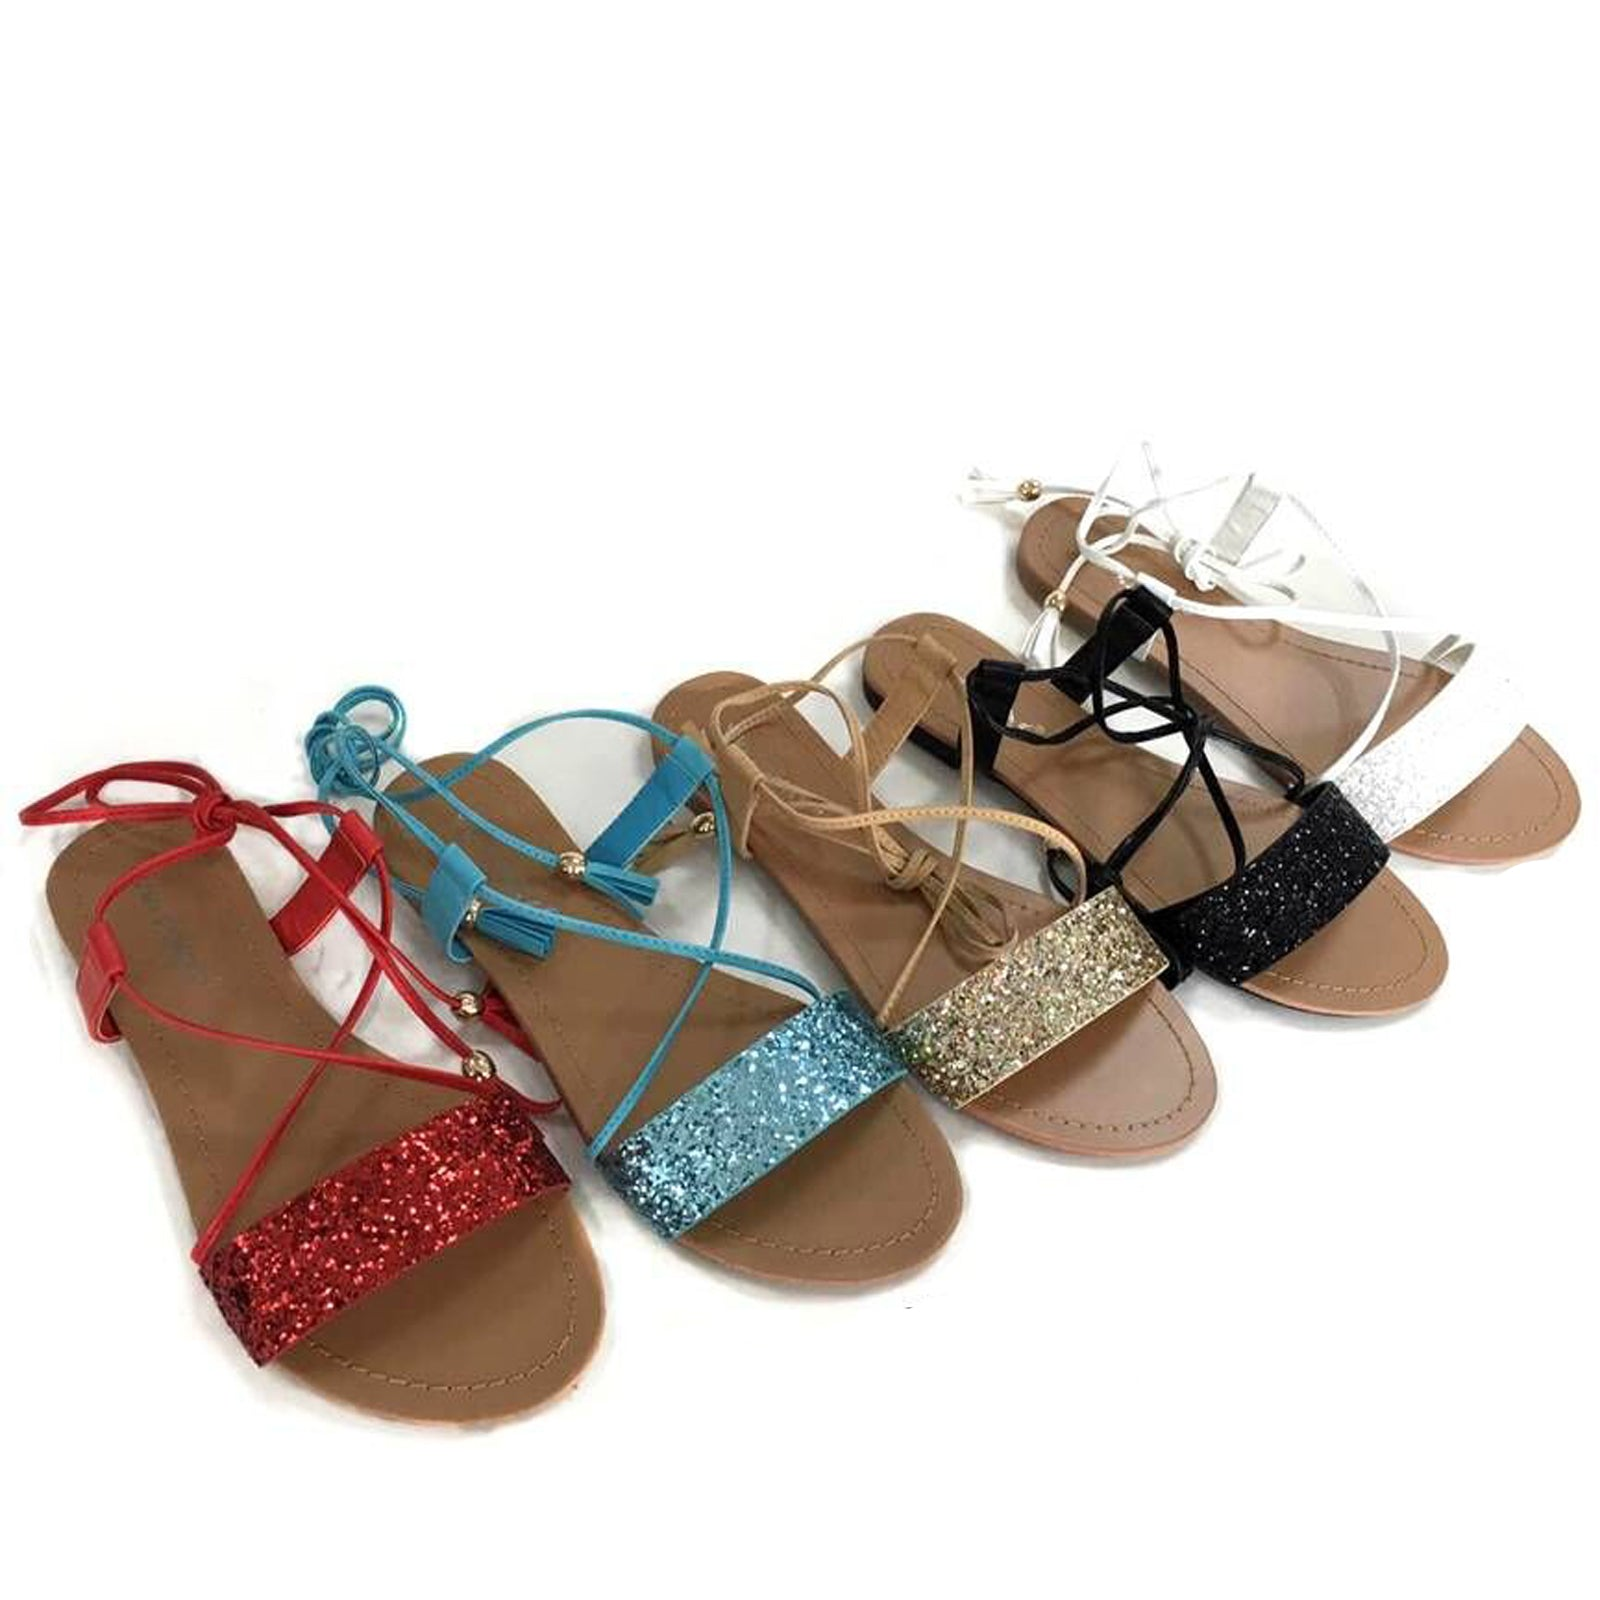 Wholesale Women's SHOES lace up glittered sandals ncpi3